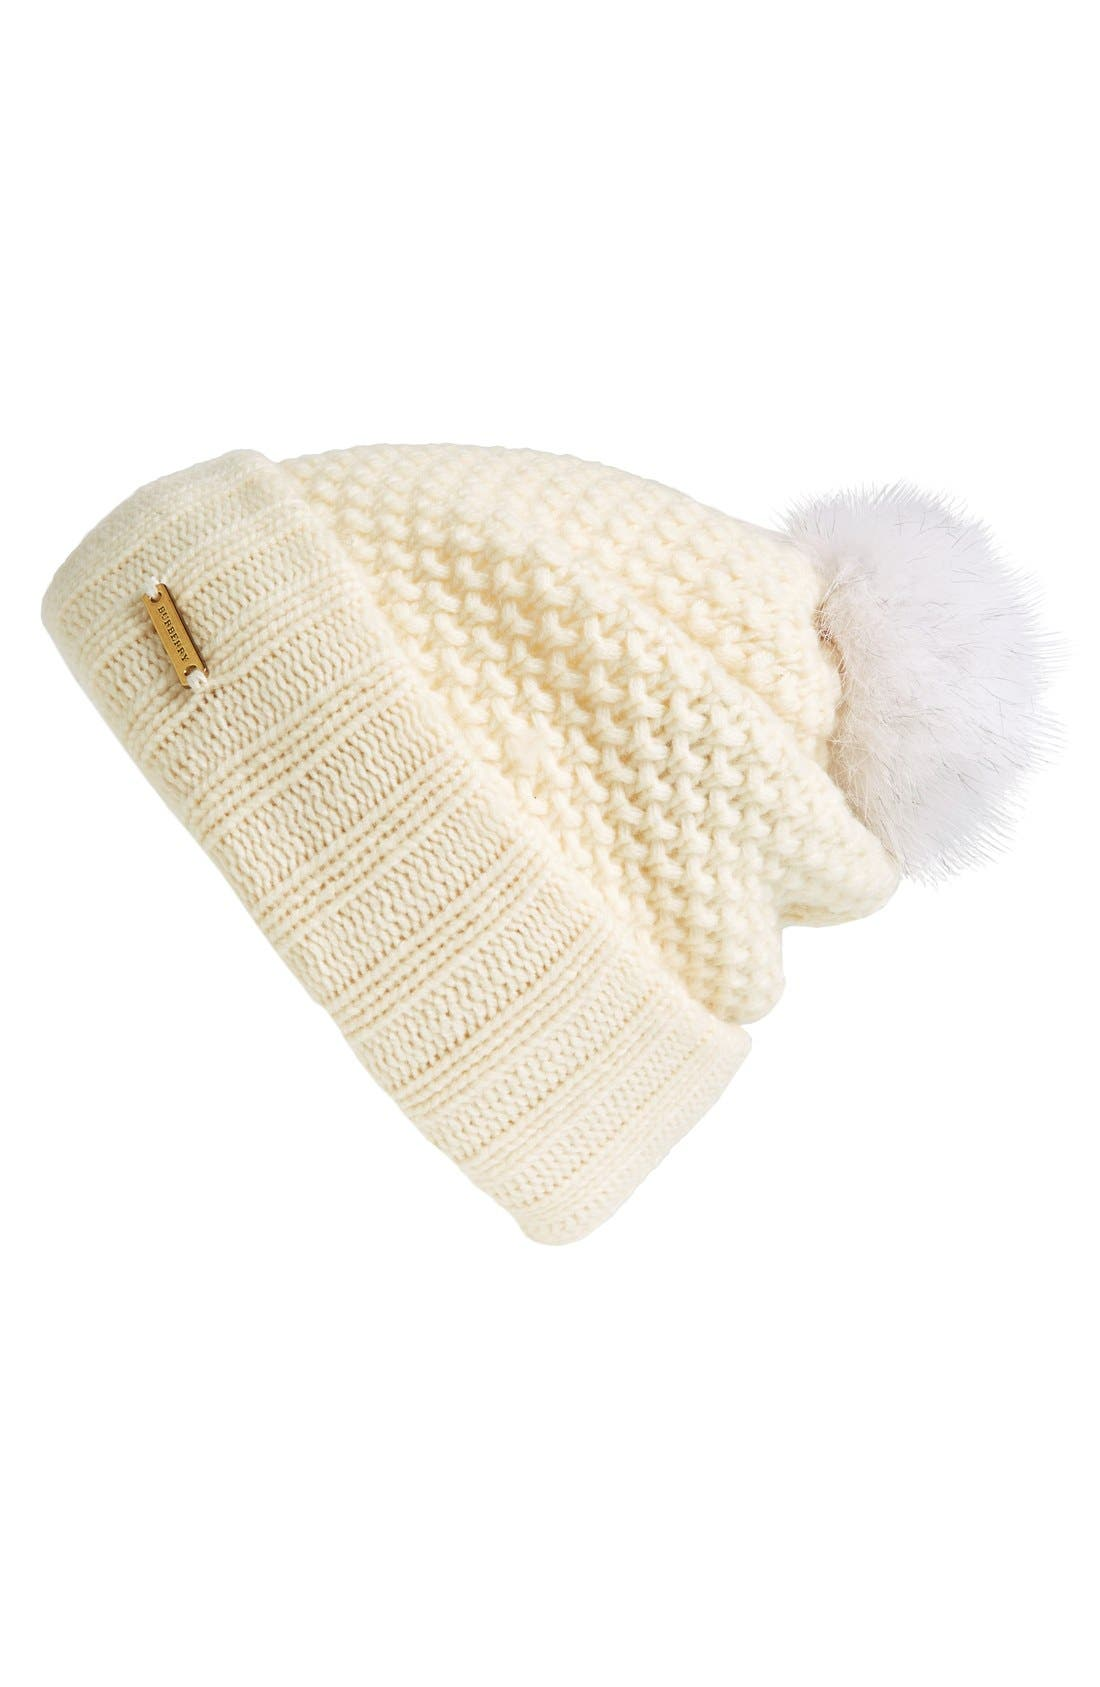 Alternate Image 1 Selected - Burberry Genuine Blue Fox Fur Pompom Beanie